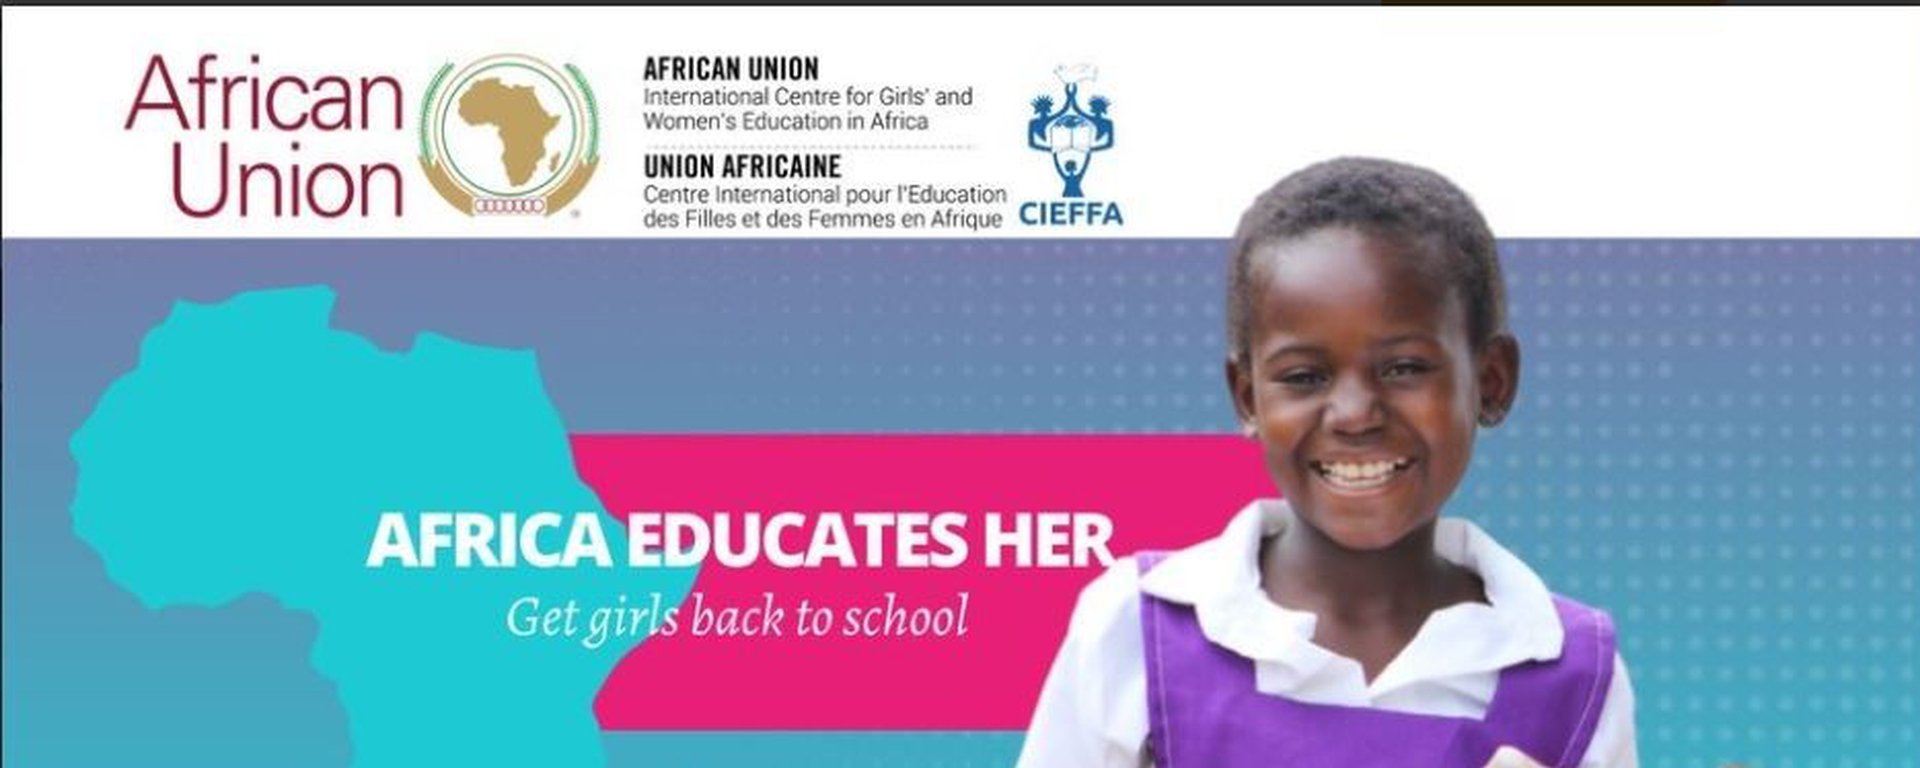 African Union - Africa Educates Her Campaign for Creative Content Movemeback African initiative cover image